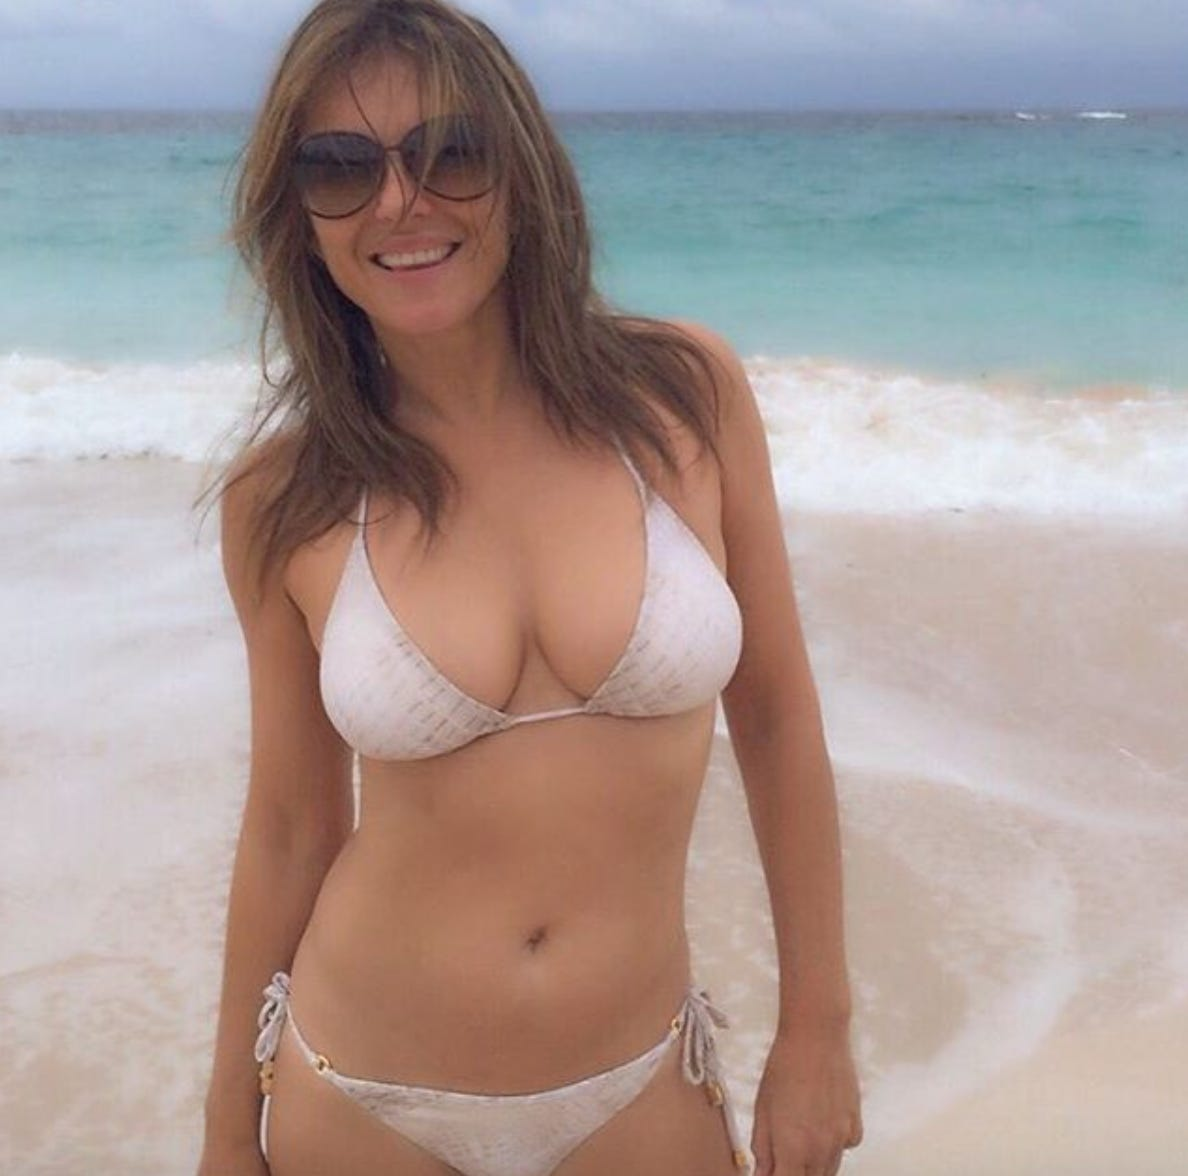 Elizabeth Hurley >> Is Elizabeth Hurley Serious With This Body At Age 51 Barstool